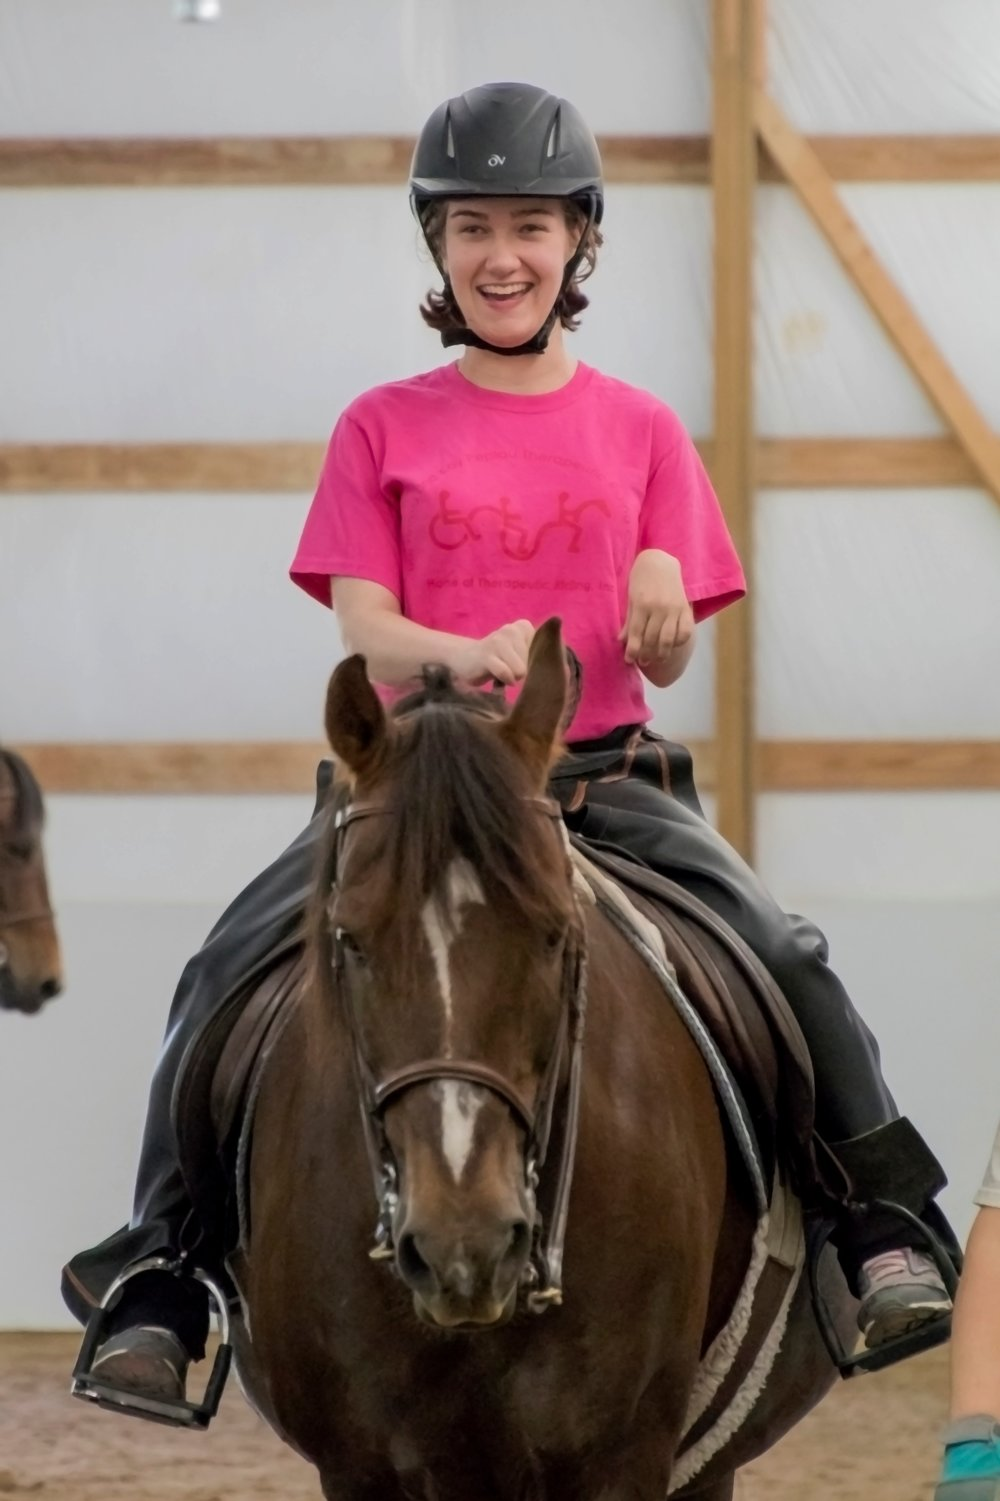 Hey Dobbs! - I'm spunky and I love to GO! I'm a liver chestnut Morgan gelding, and love teaching riders to become independent. My big trot is so much FUN!